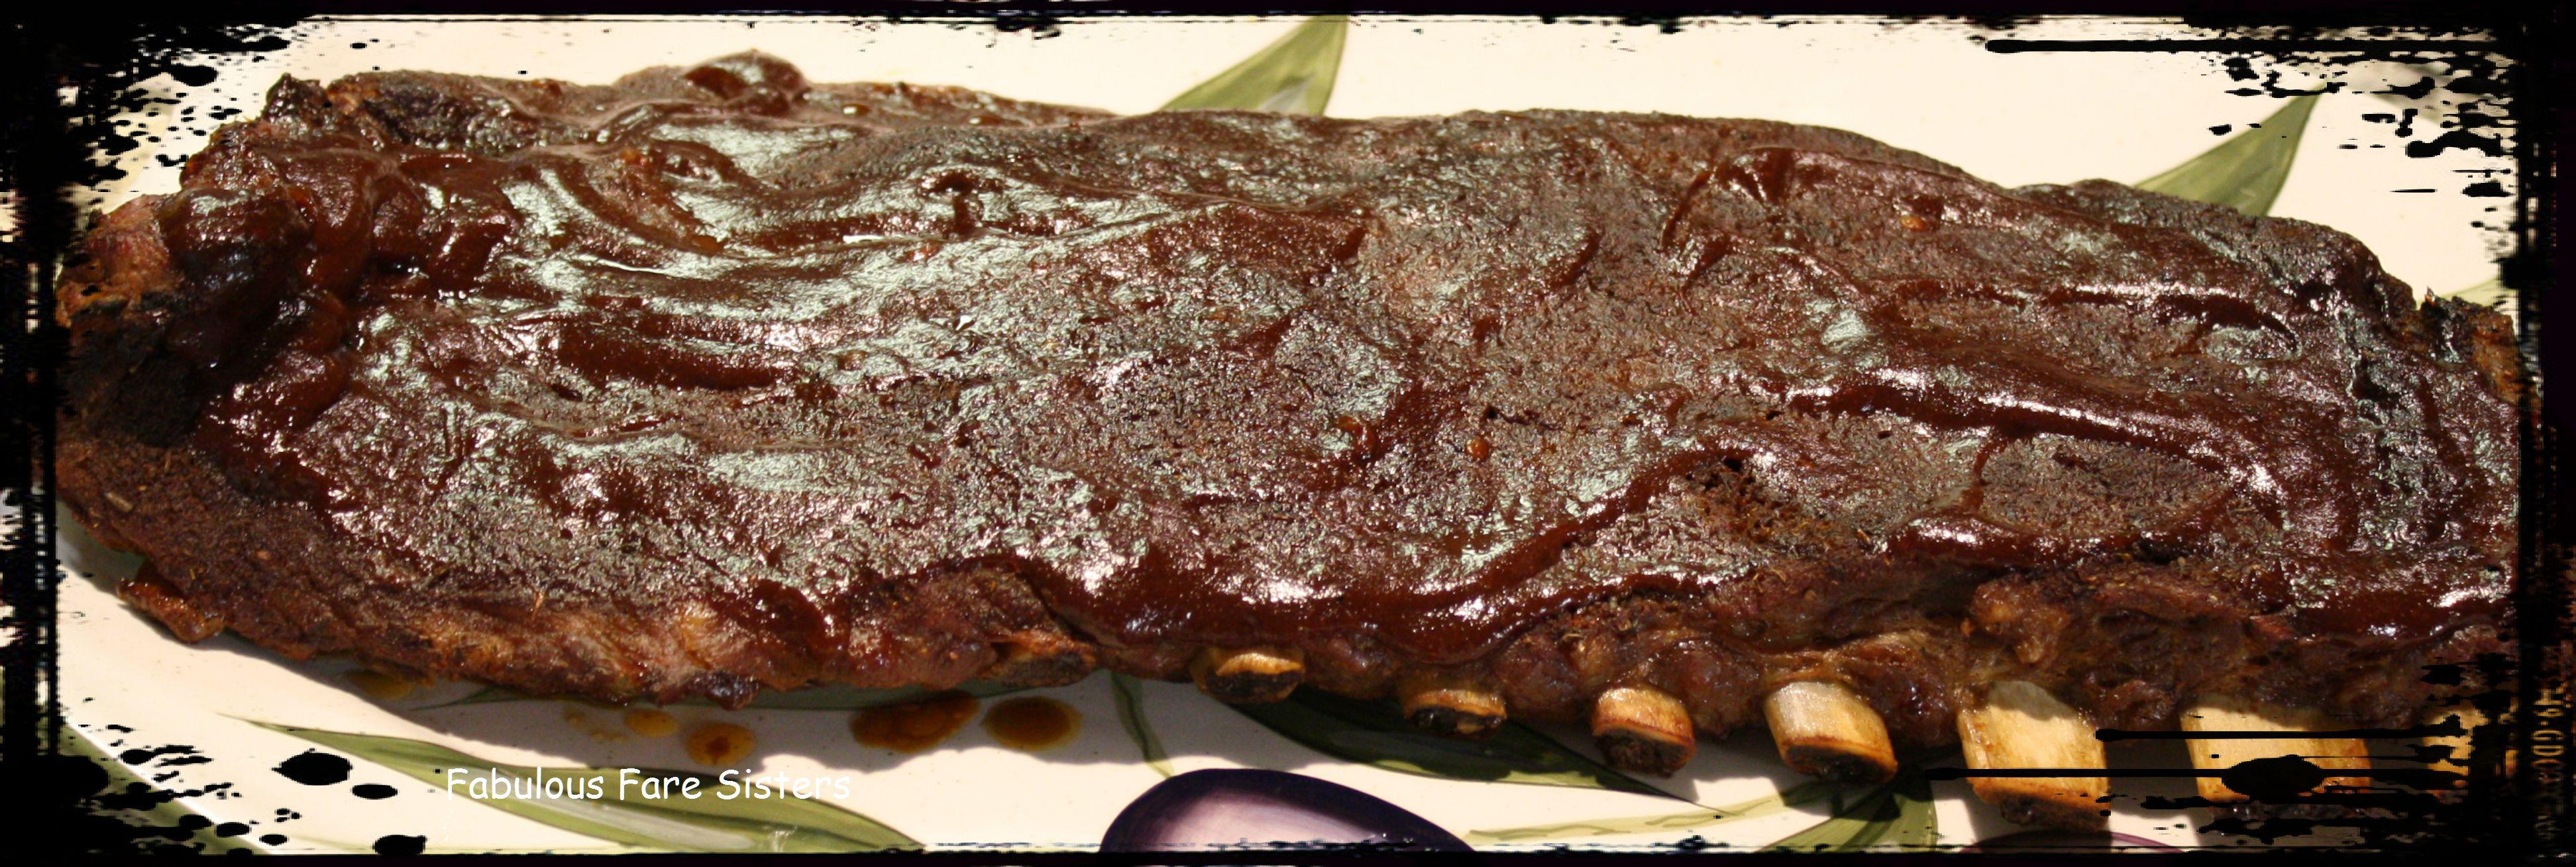 how to cook barbecue pork ribs in the oven